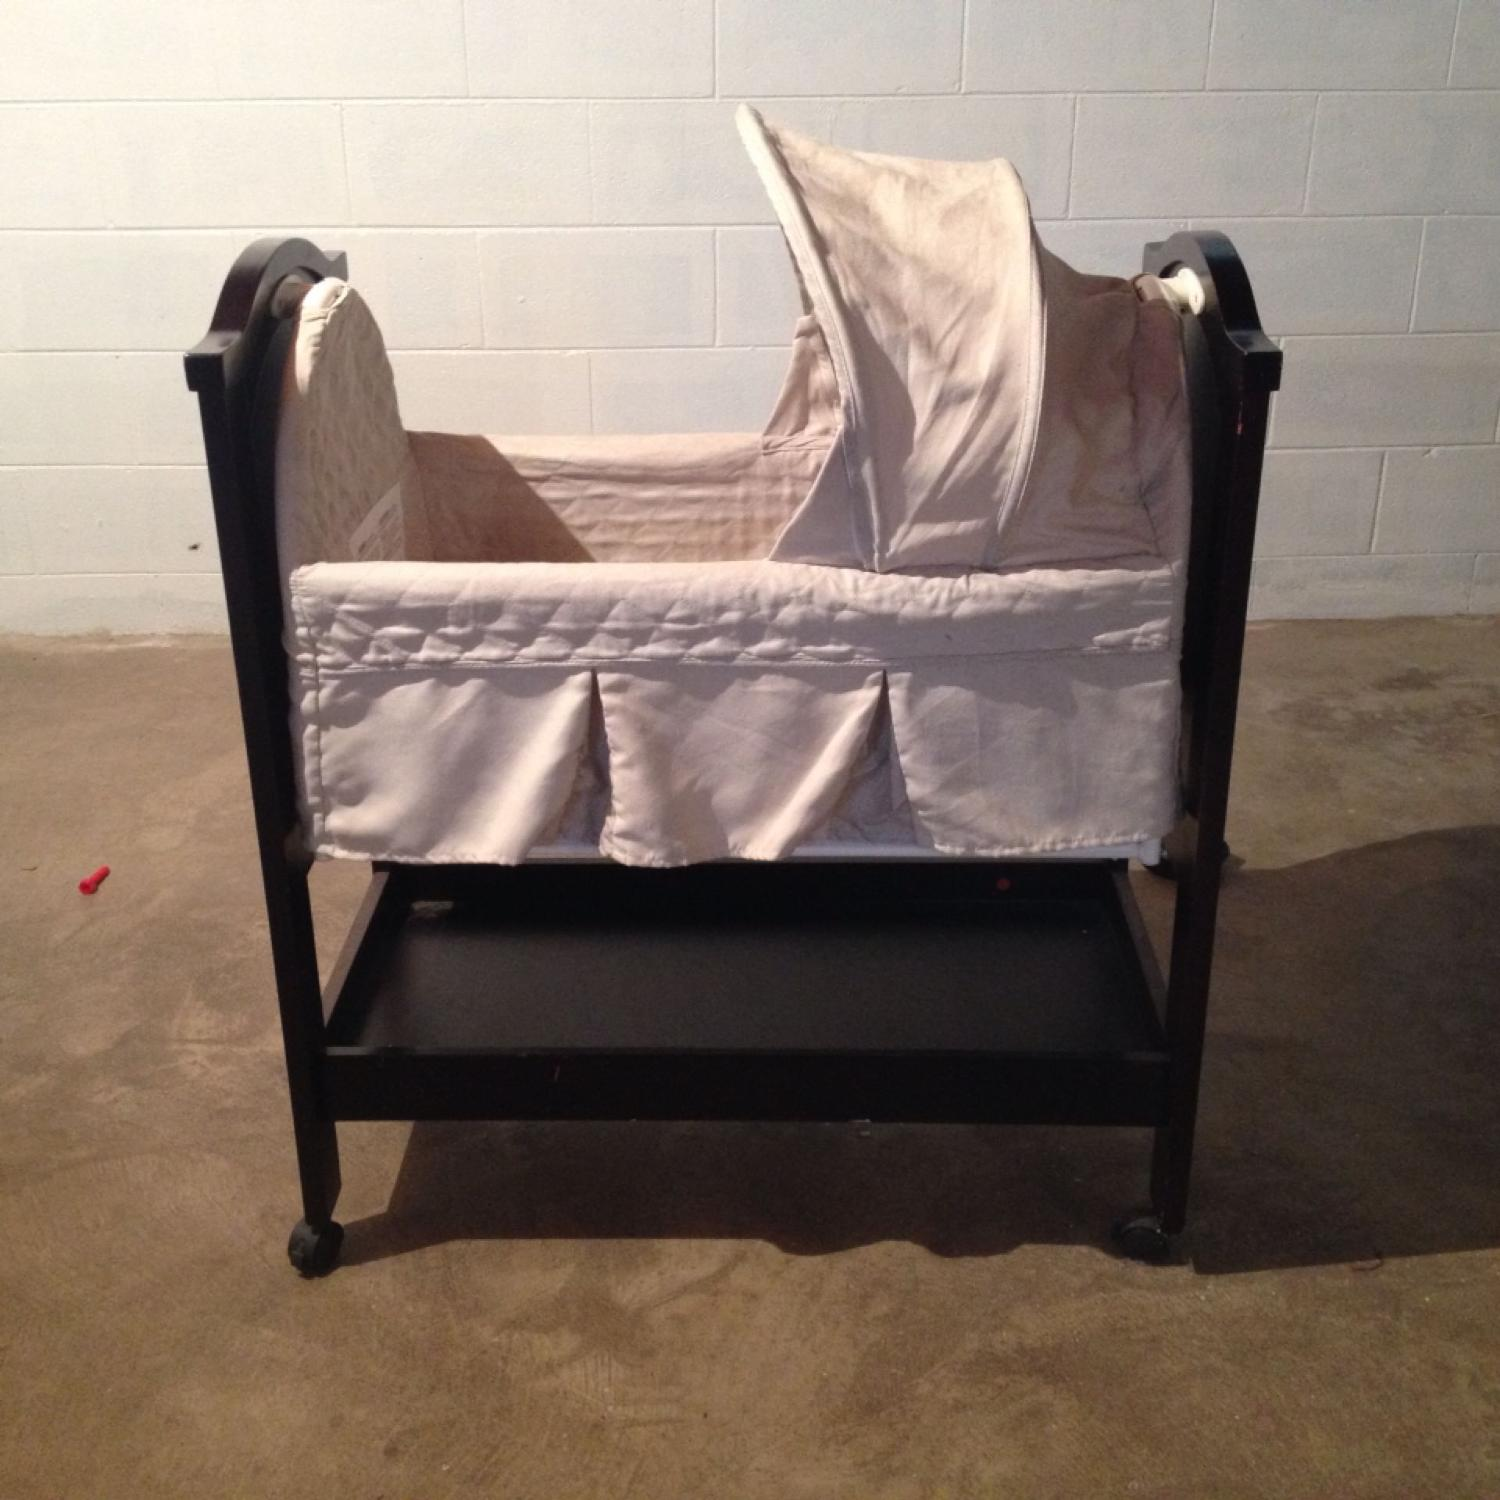 Find More Eddie Bauer Cherry Wood Bassinet For Sale At Up To 90 Off